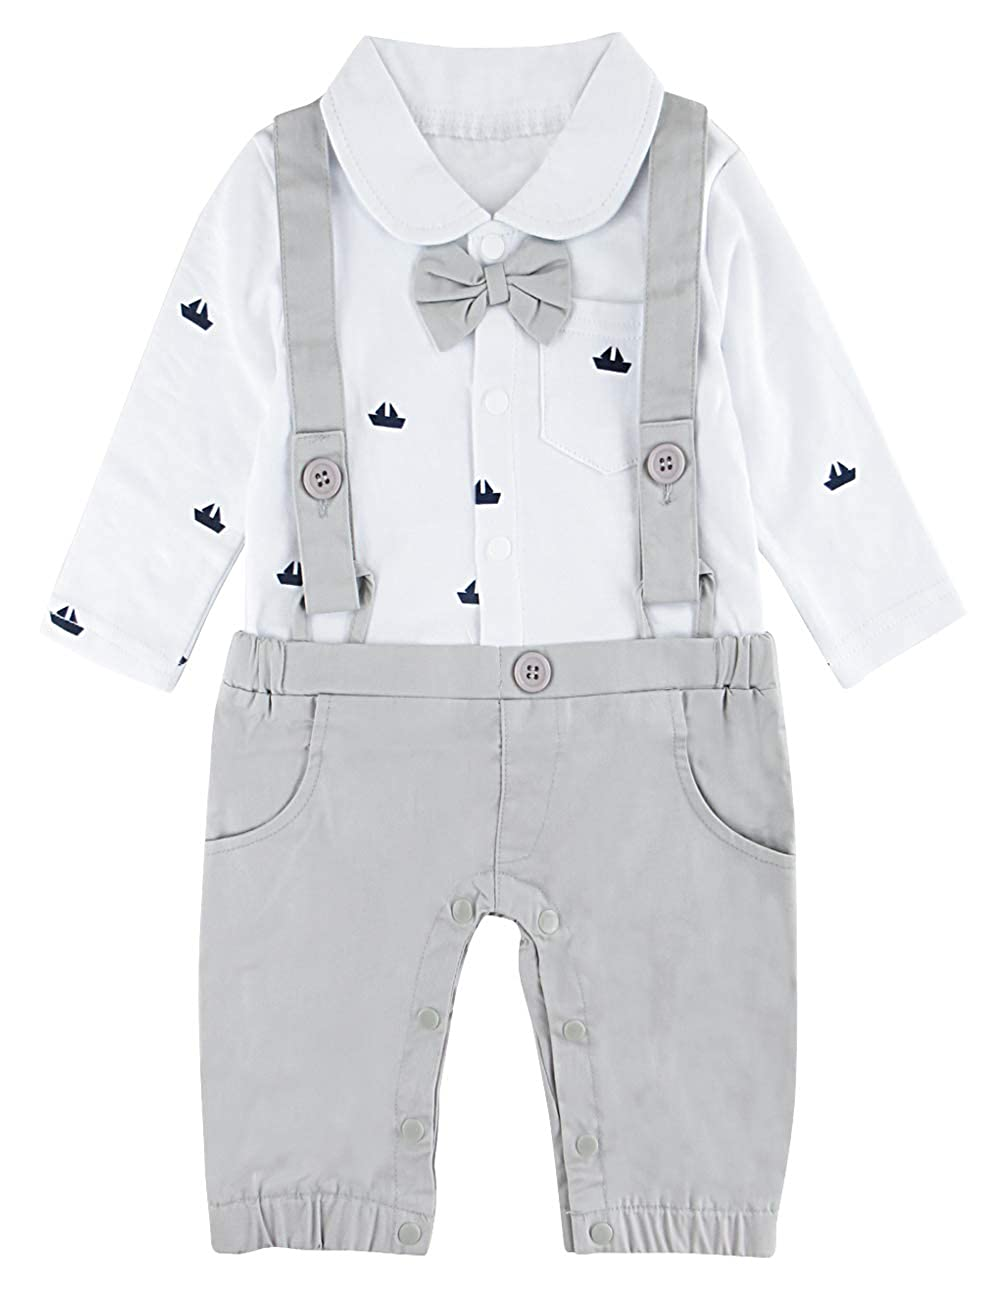 740cba415f1d A J Design Baby Boys  Funny Gentleman Romper Overalls Jumpsuit with ...